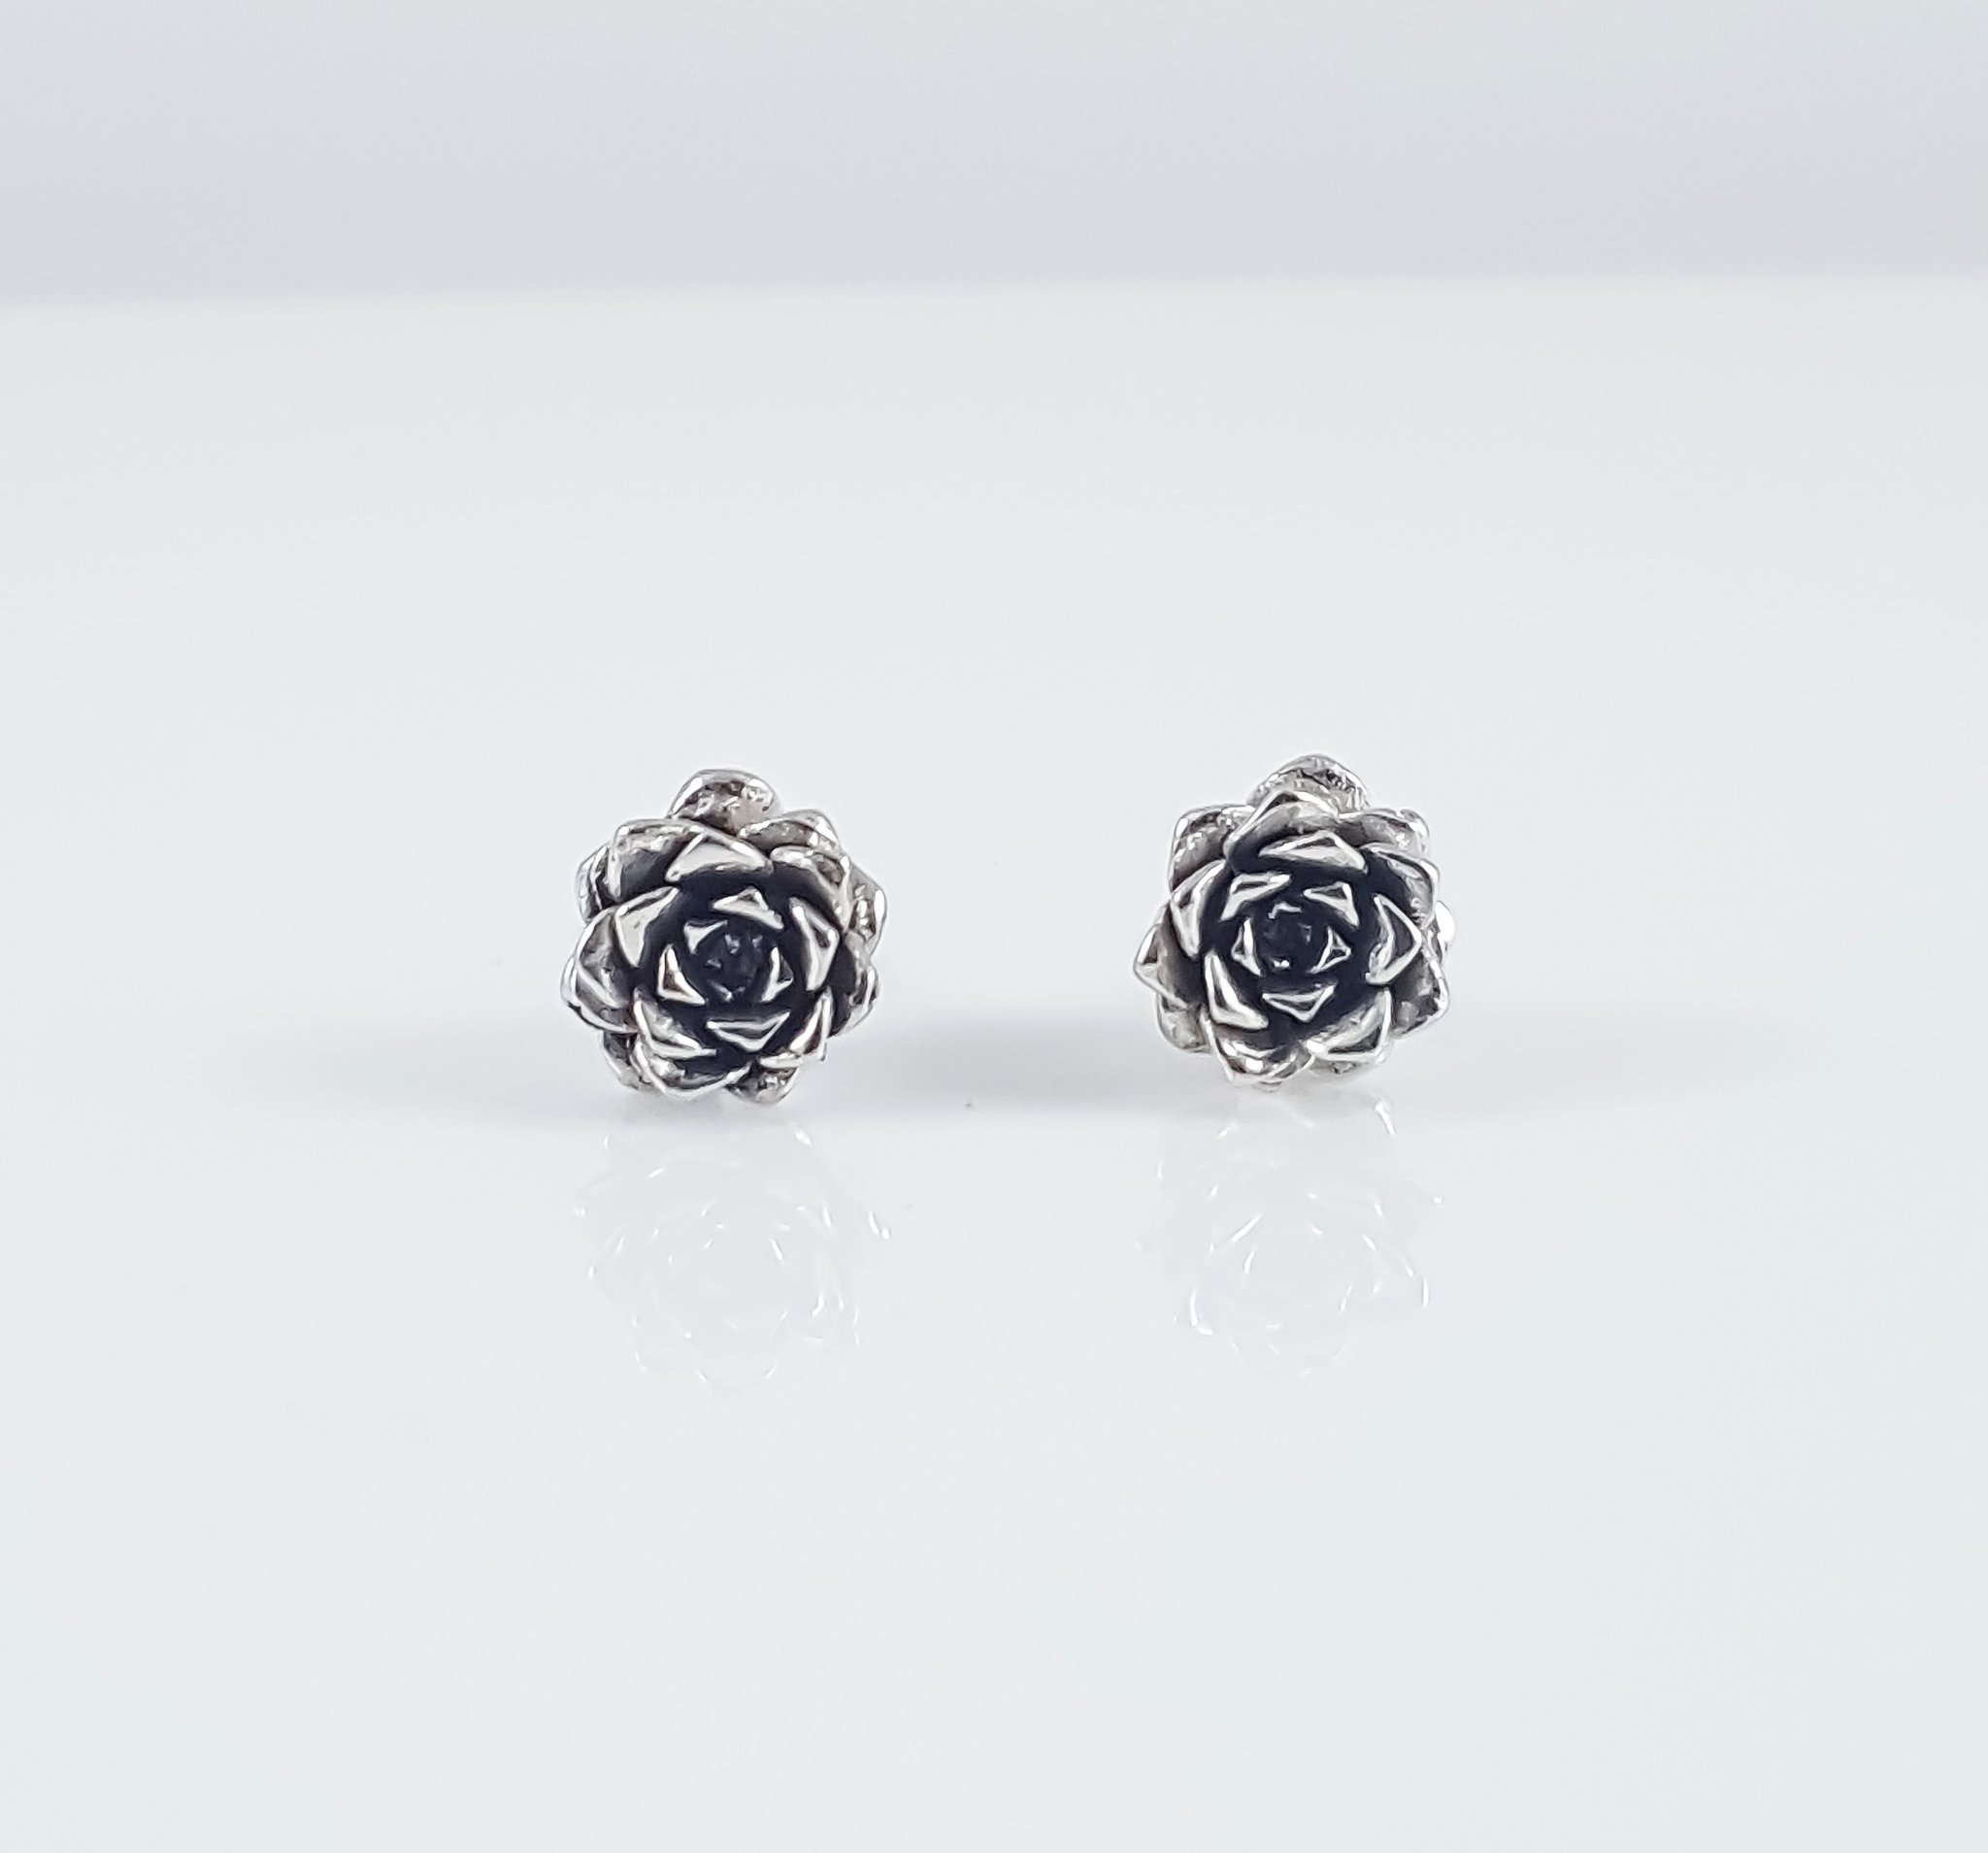 Succulent Bud Stud Earrings3 1024x1024@2x